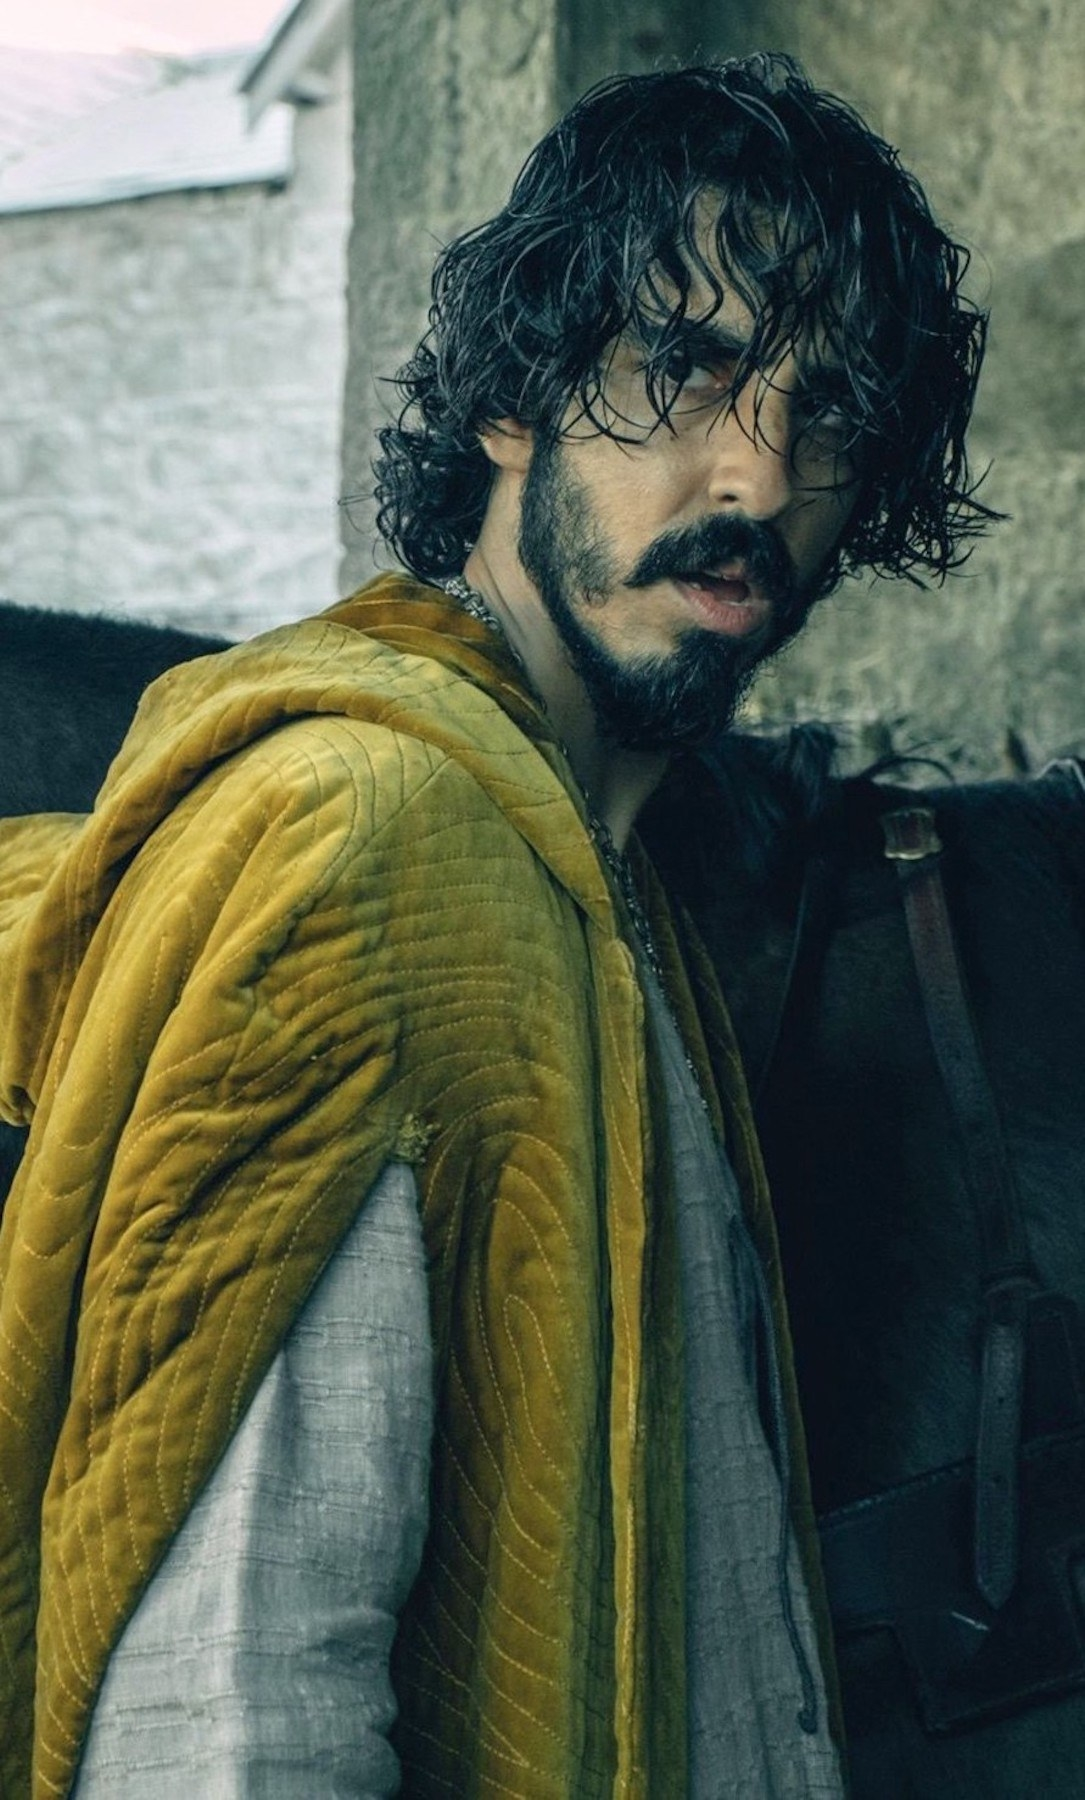 Dev Patel with long hair, a beard, standing next to a horse looking scruffy